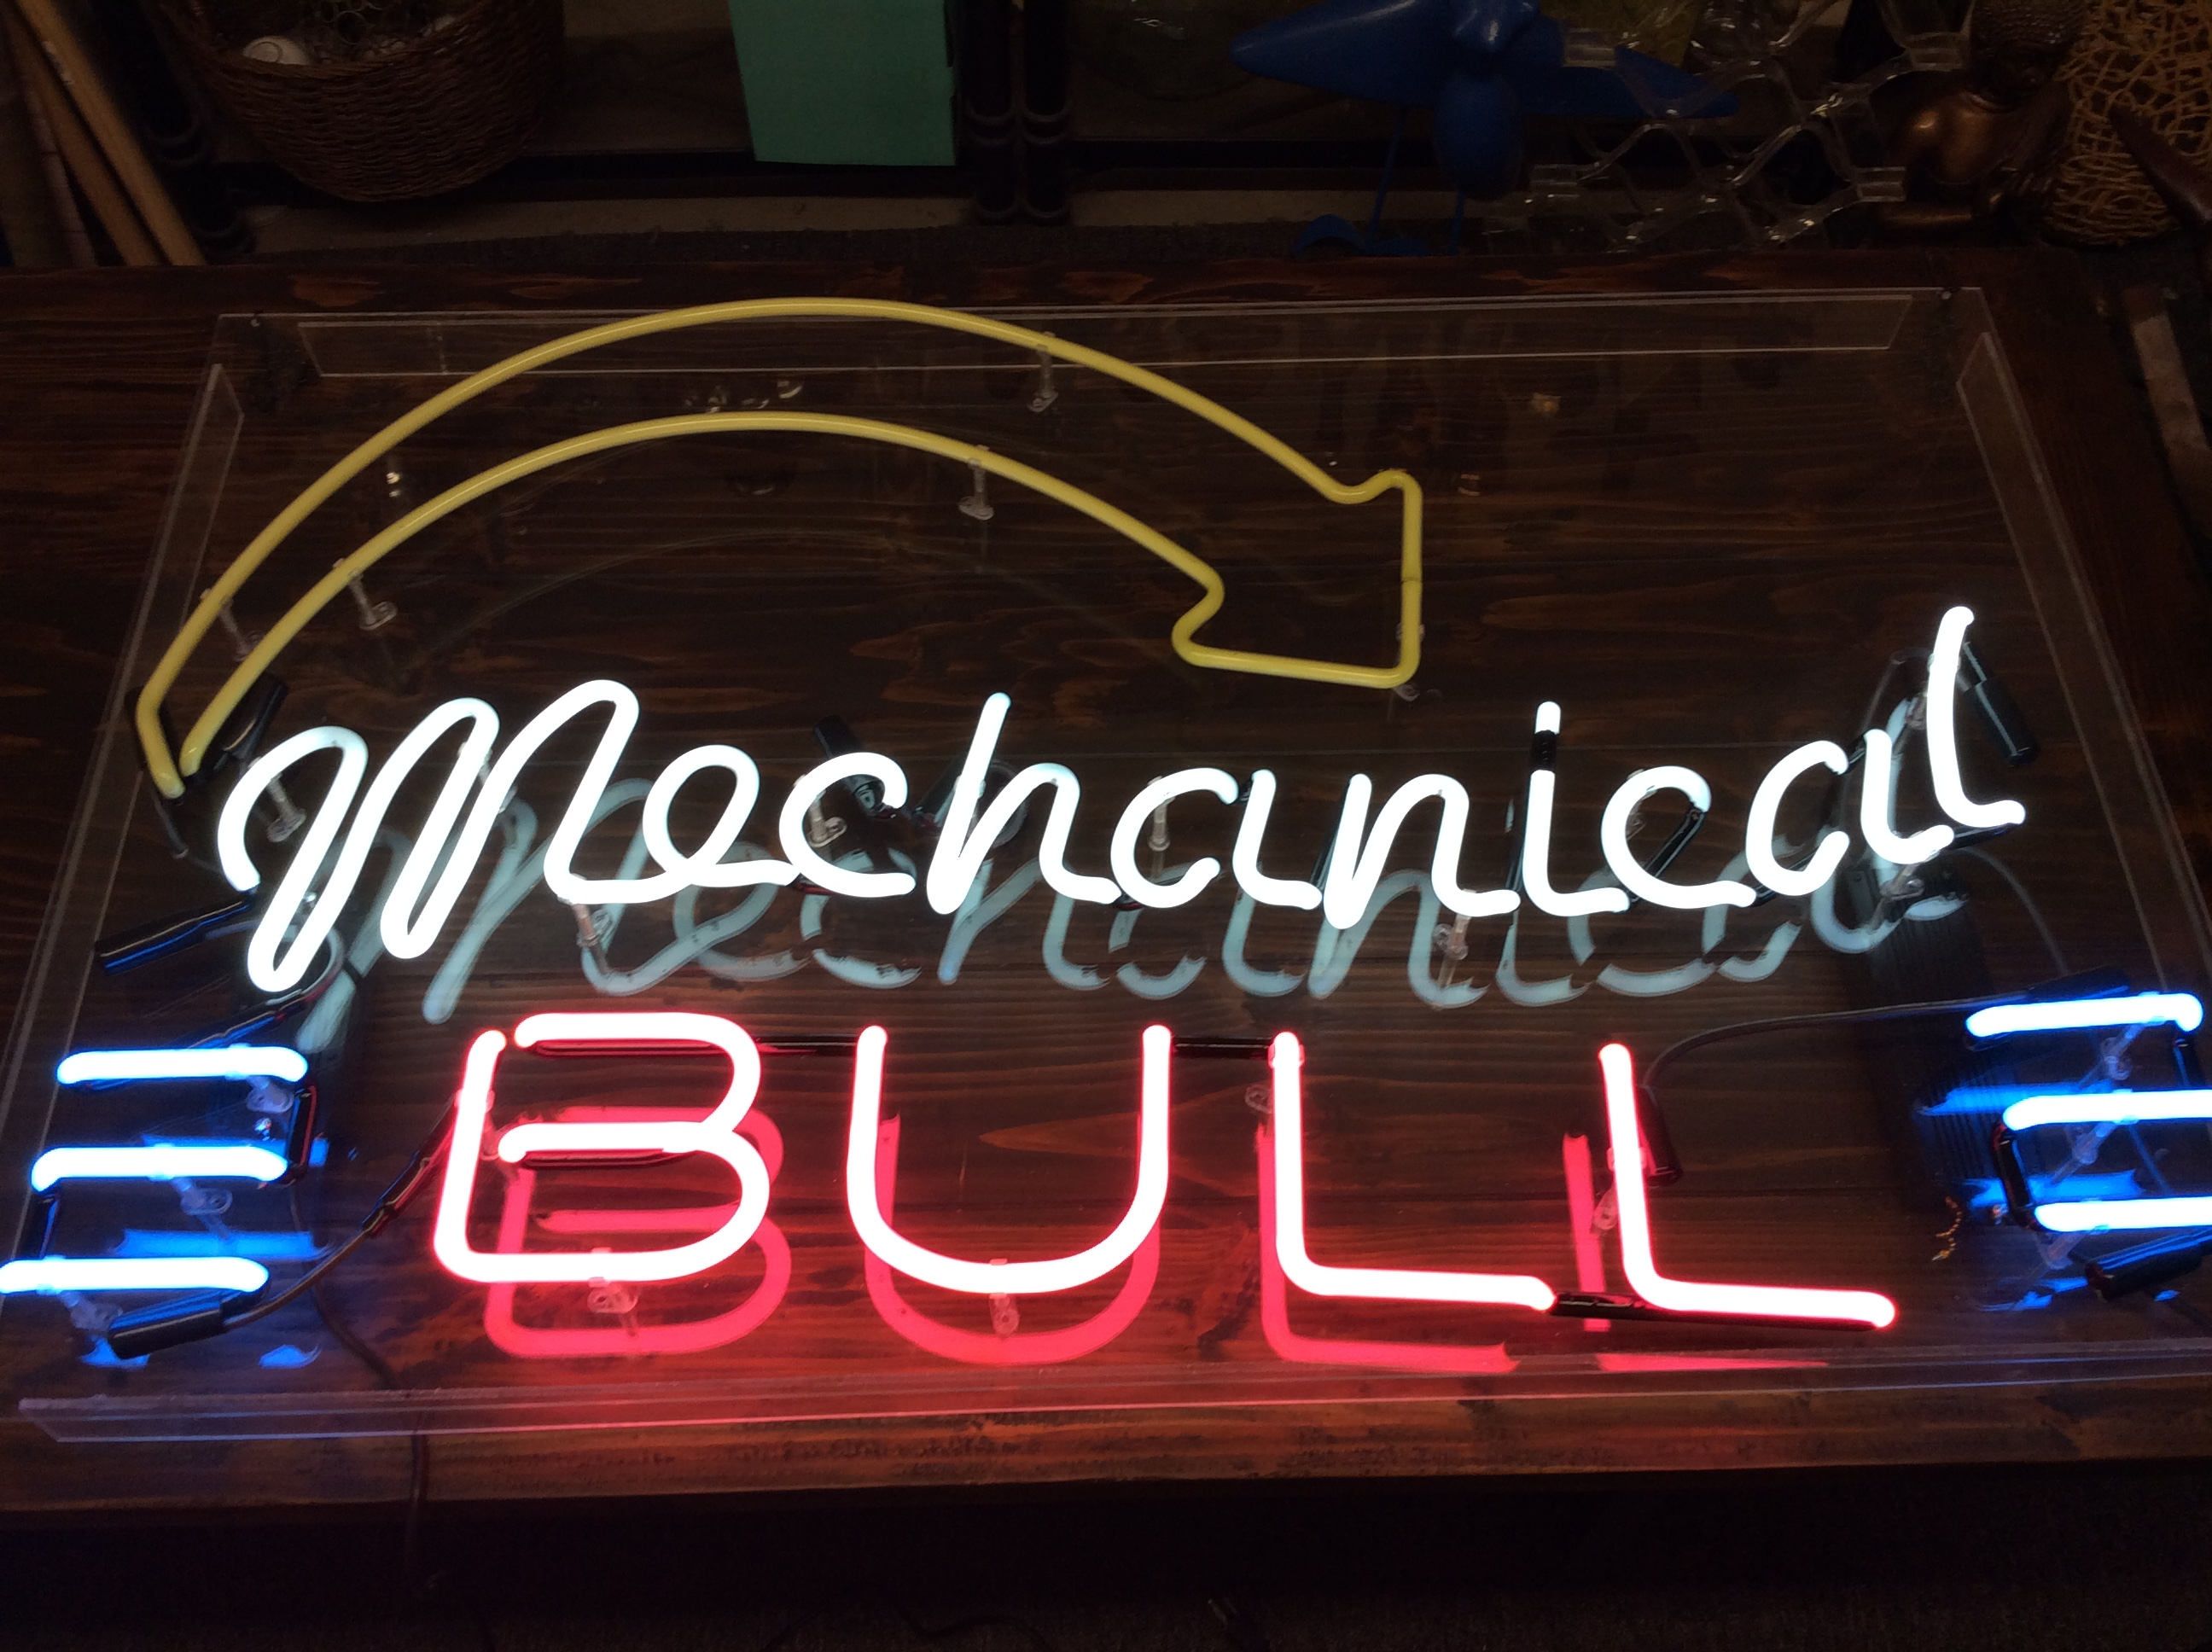 Neon Mechanical Bull